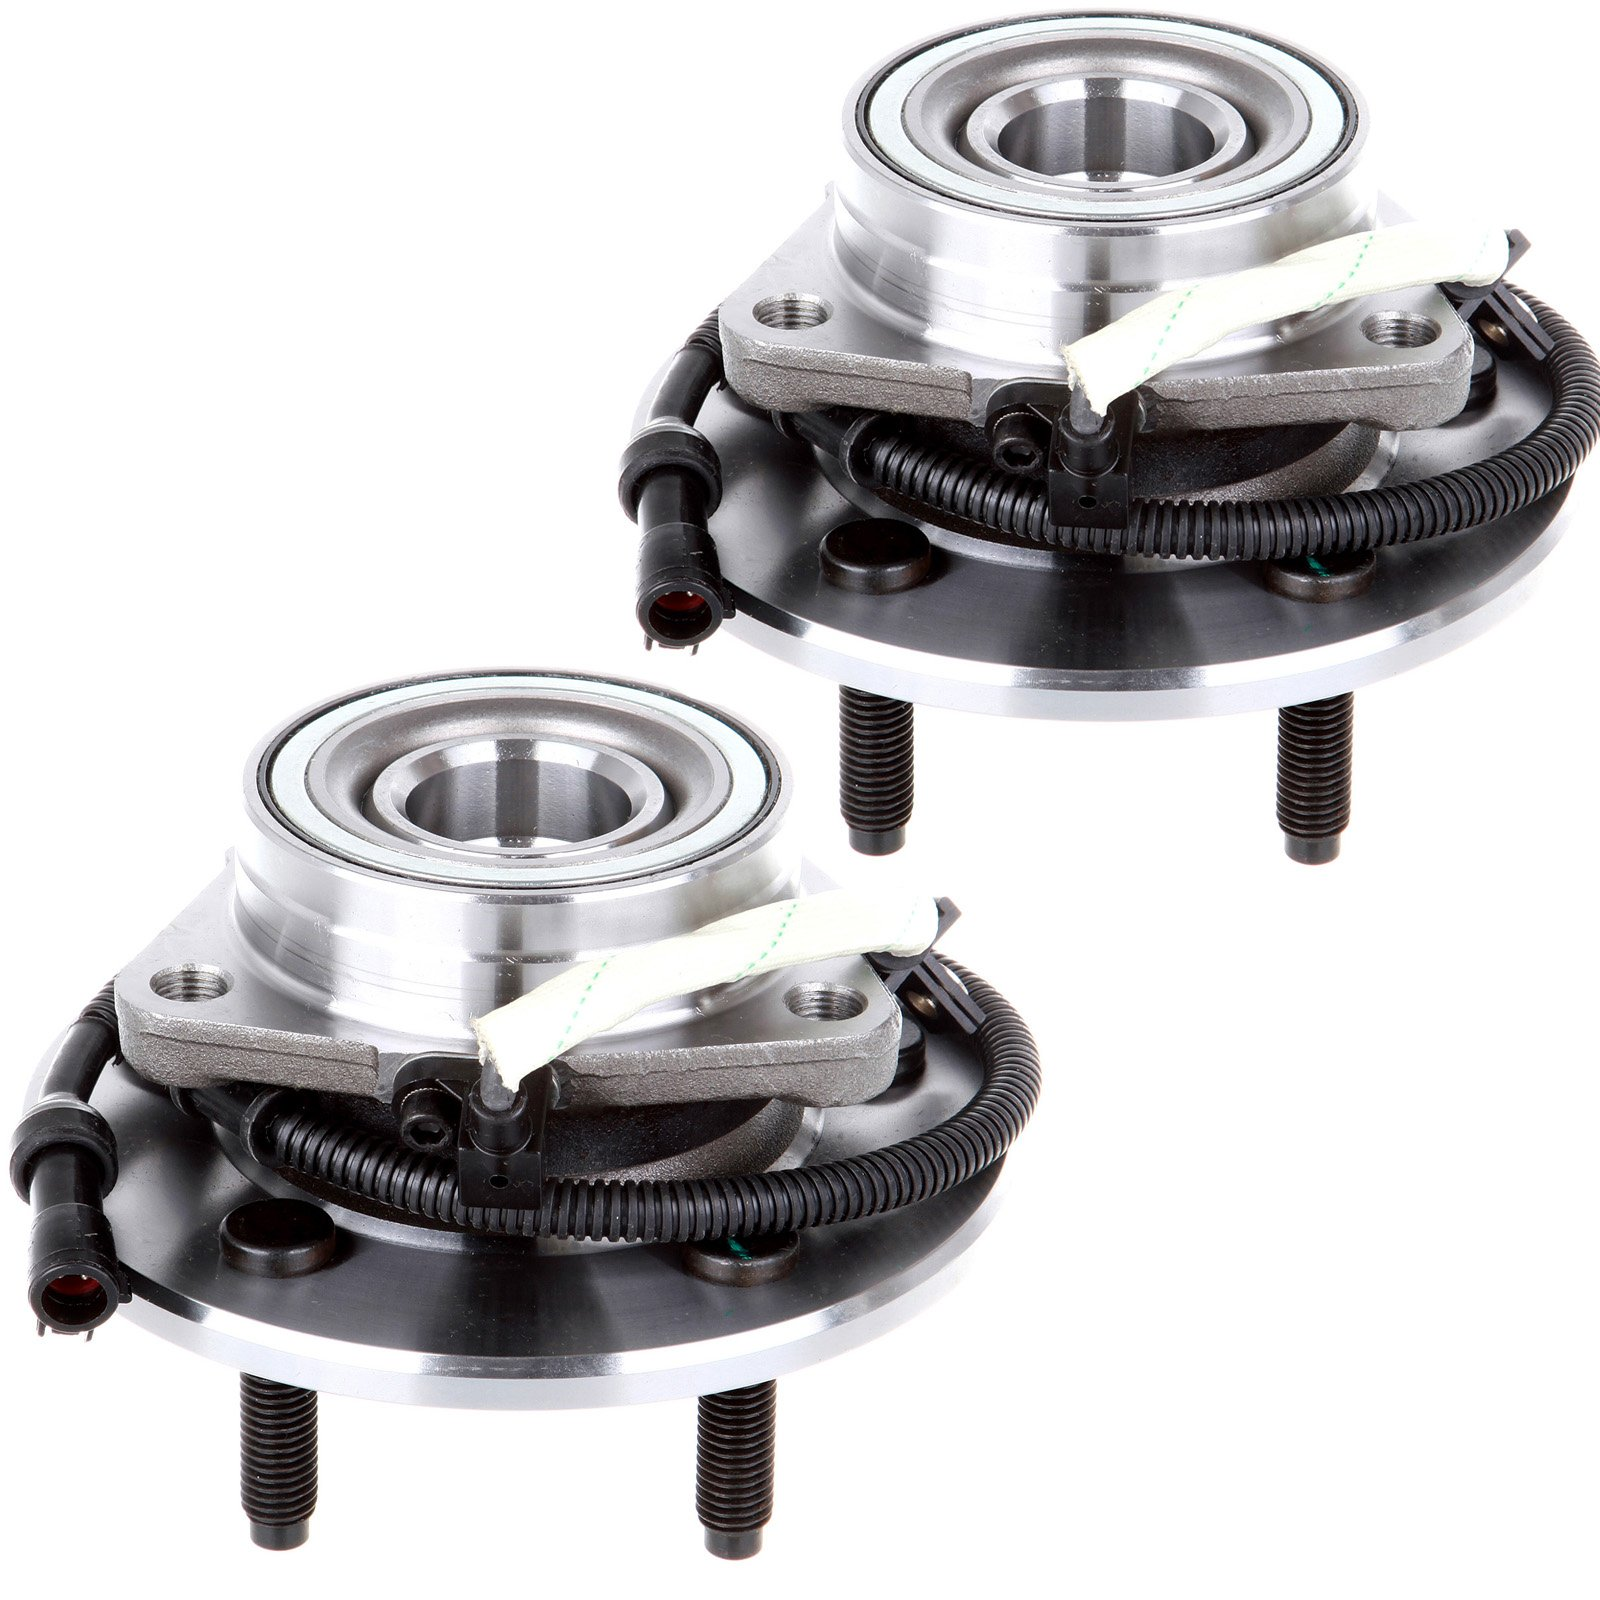 ECCPP New Pair Set of 2 Front Wheel Hub Bearing Assemblies for 00-04 Ford F150 4WD 515029X2